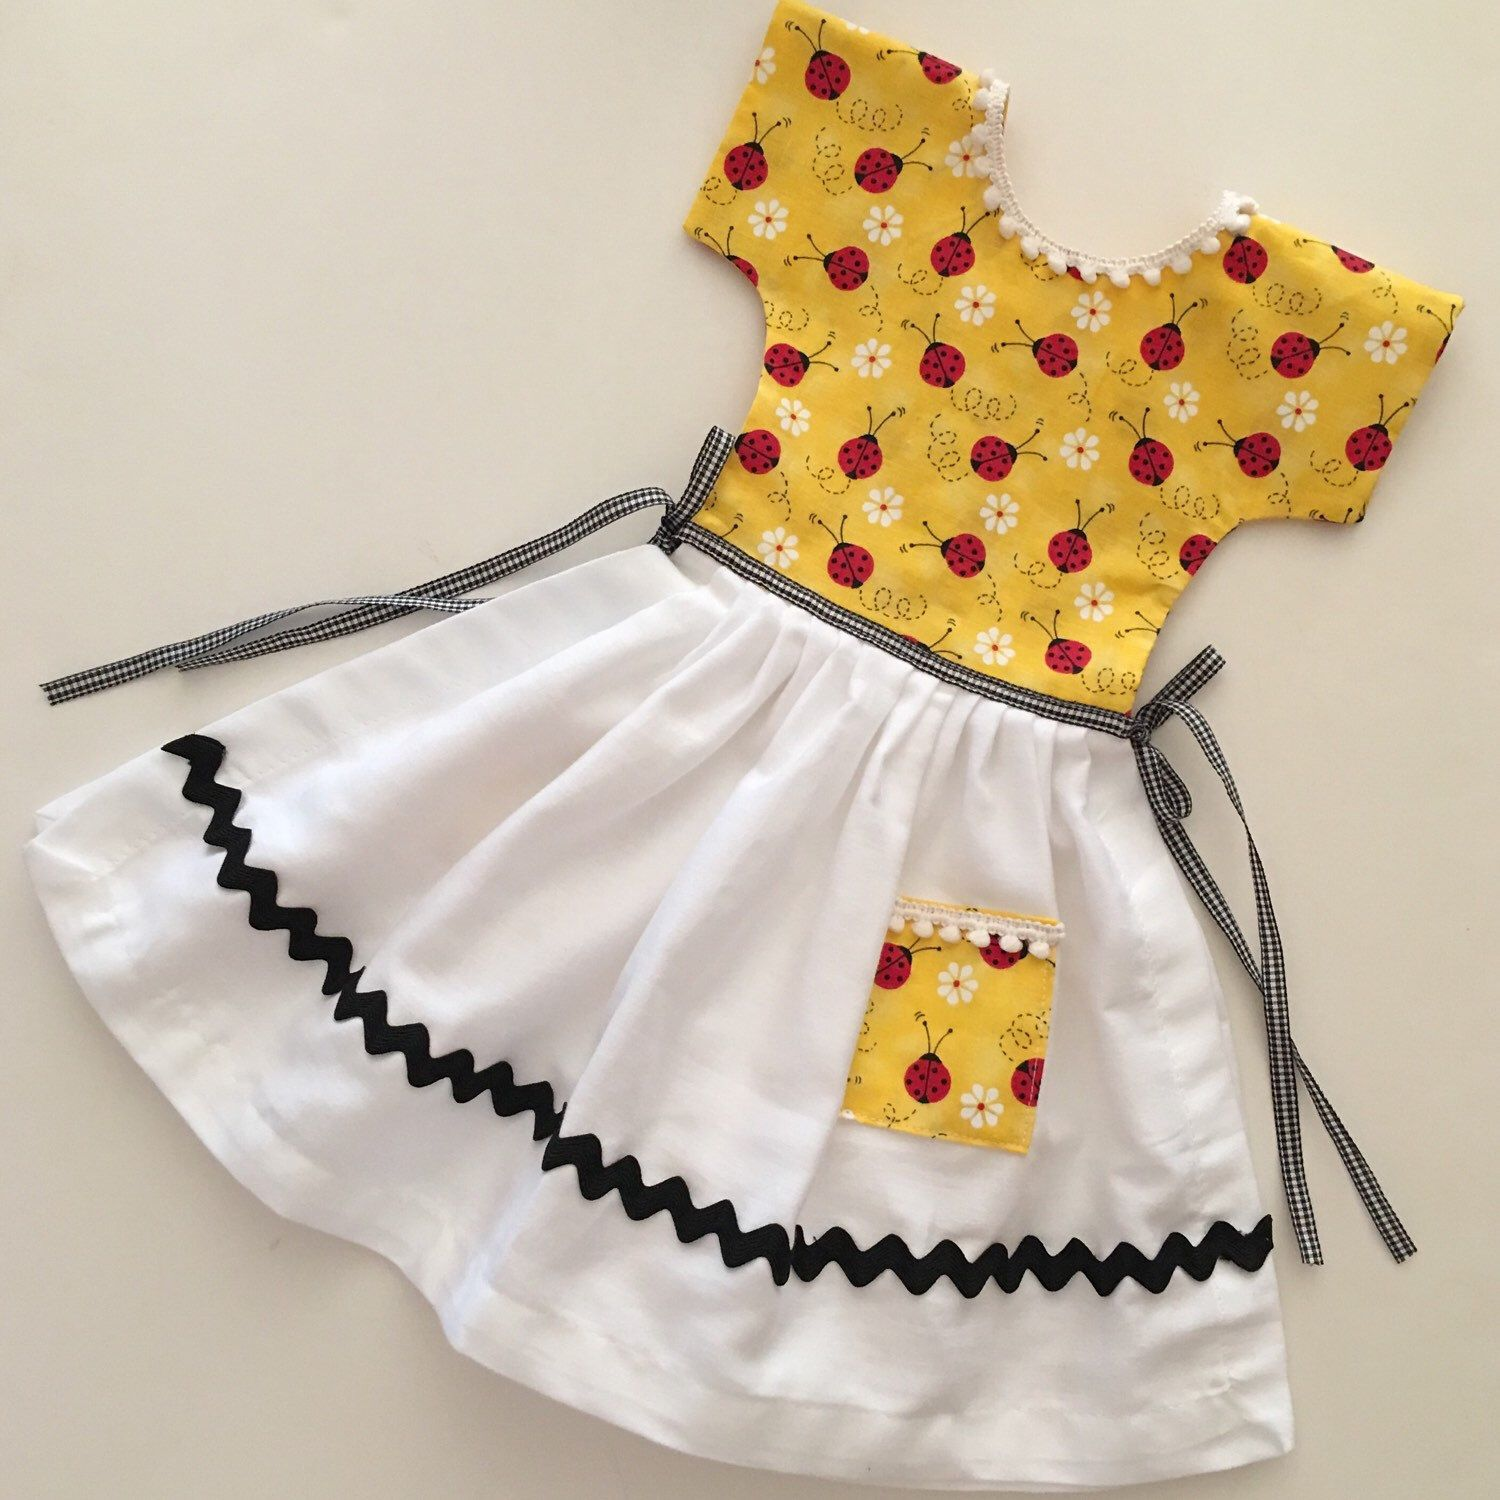 Come See My Latest Oven Door Dress Ladybugs Towel Dress Art Clothes Kitchen Hand Towels